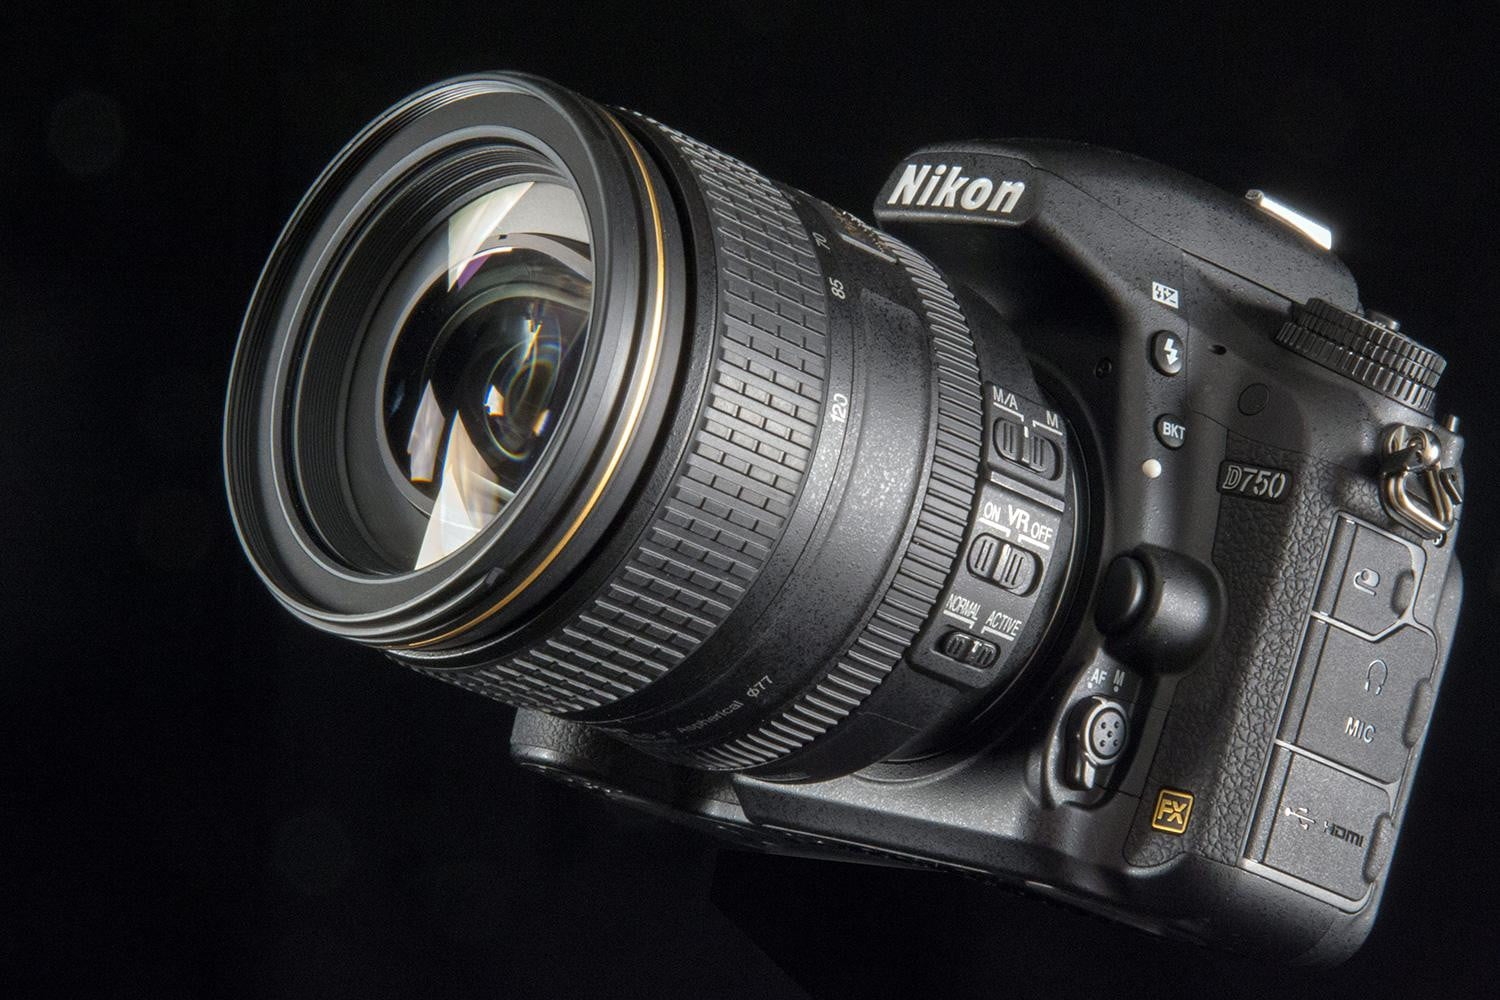 The Best DSLR Cameras for Beginners | From Budget to Full